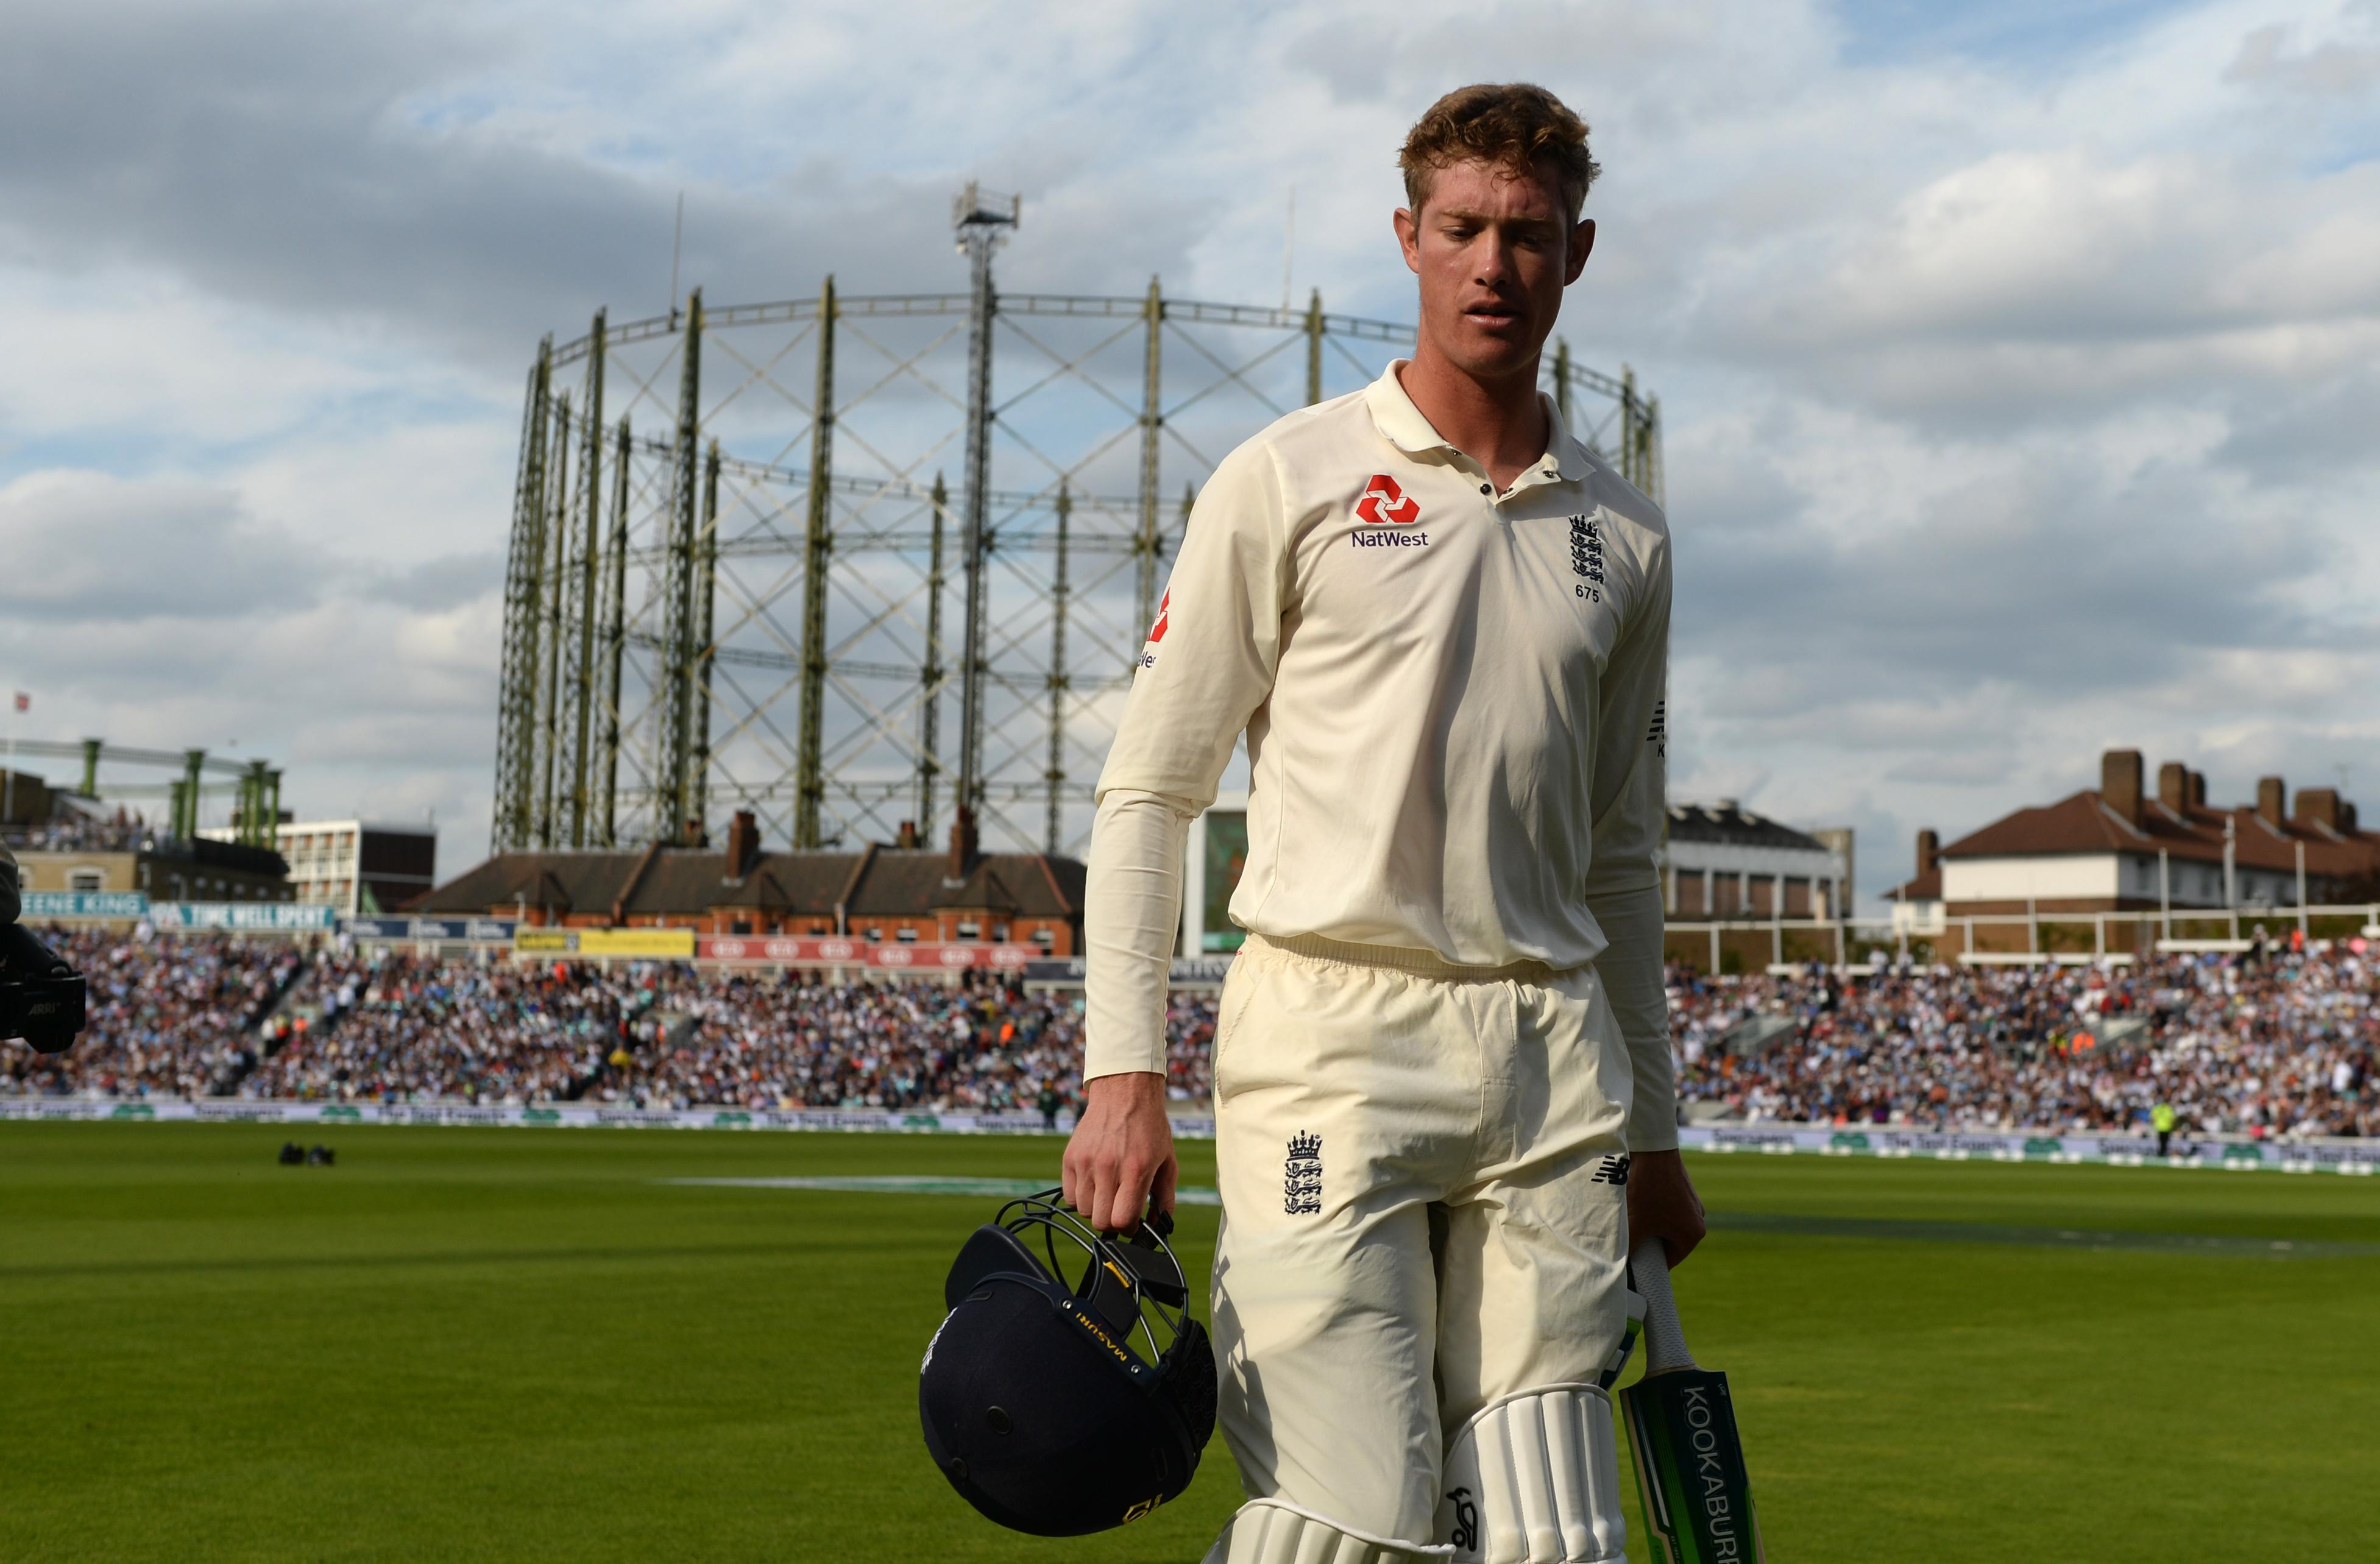 Keaton Jennings flopped again in the Fifth Test against India and should now be ditched, according to England batting legend Kevin Pietersen